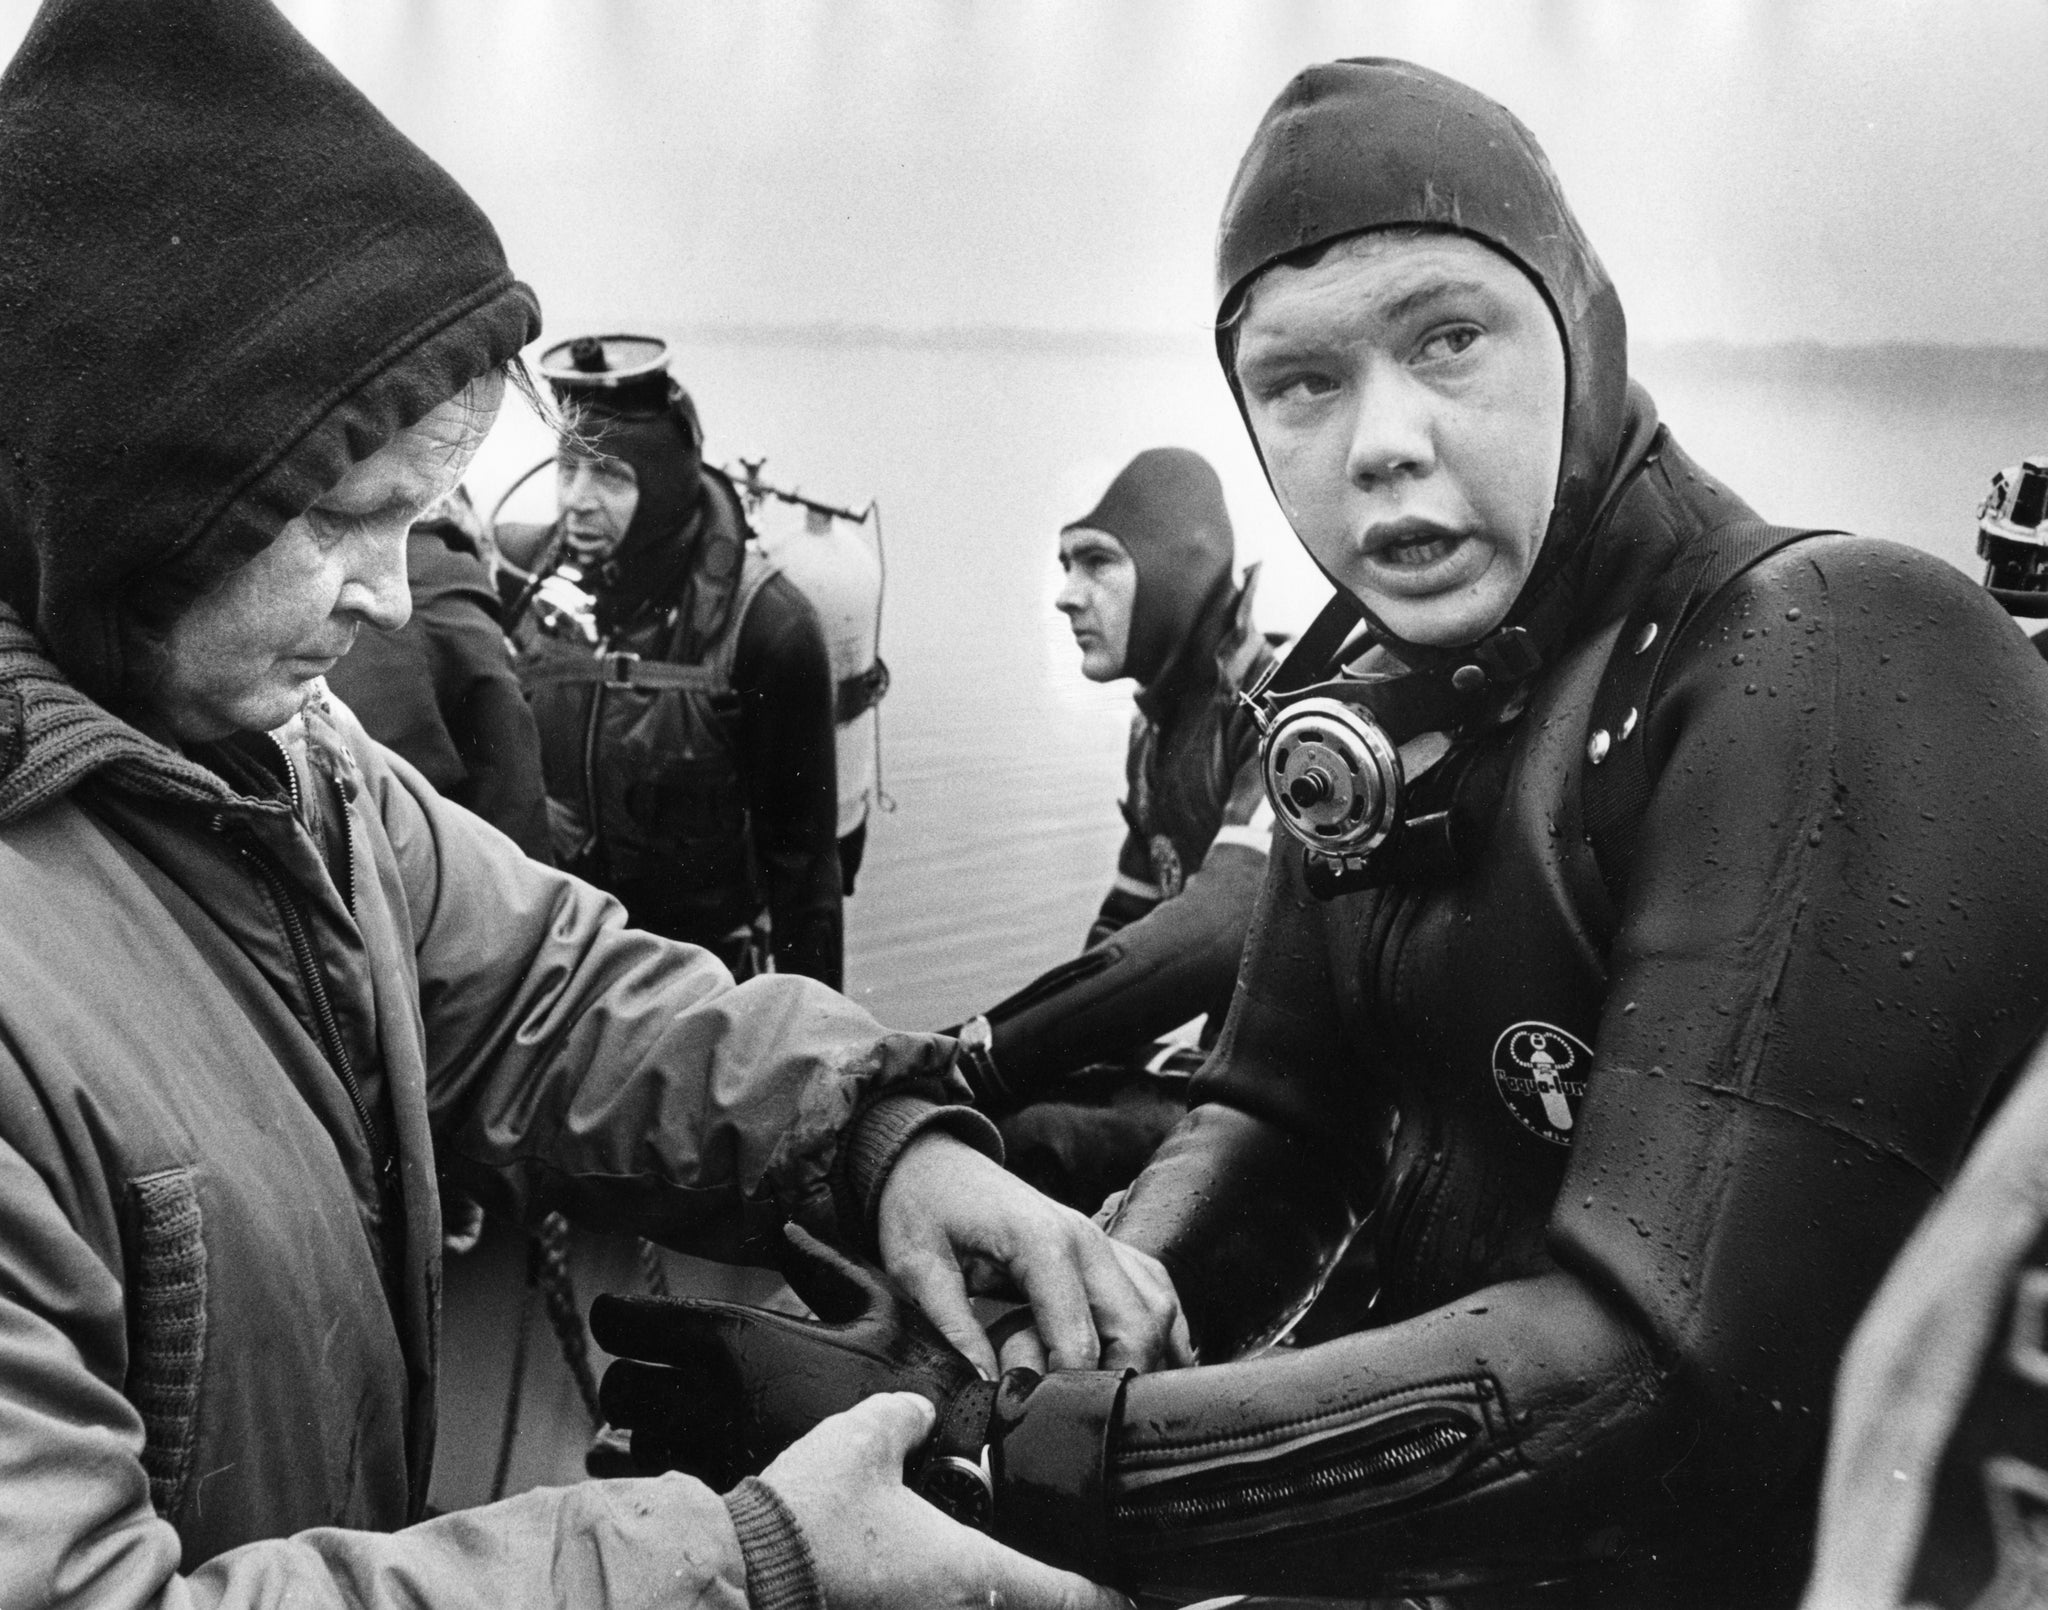 In diving suits, from left, Charles Campbell, Travis Brann and Phil Sharrow following their first dive on soul and R&B star Otis Redding's wrecked Beechcraft H18 aircraft, December 1967.  -- Wisconsin State Journal